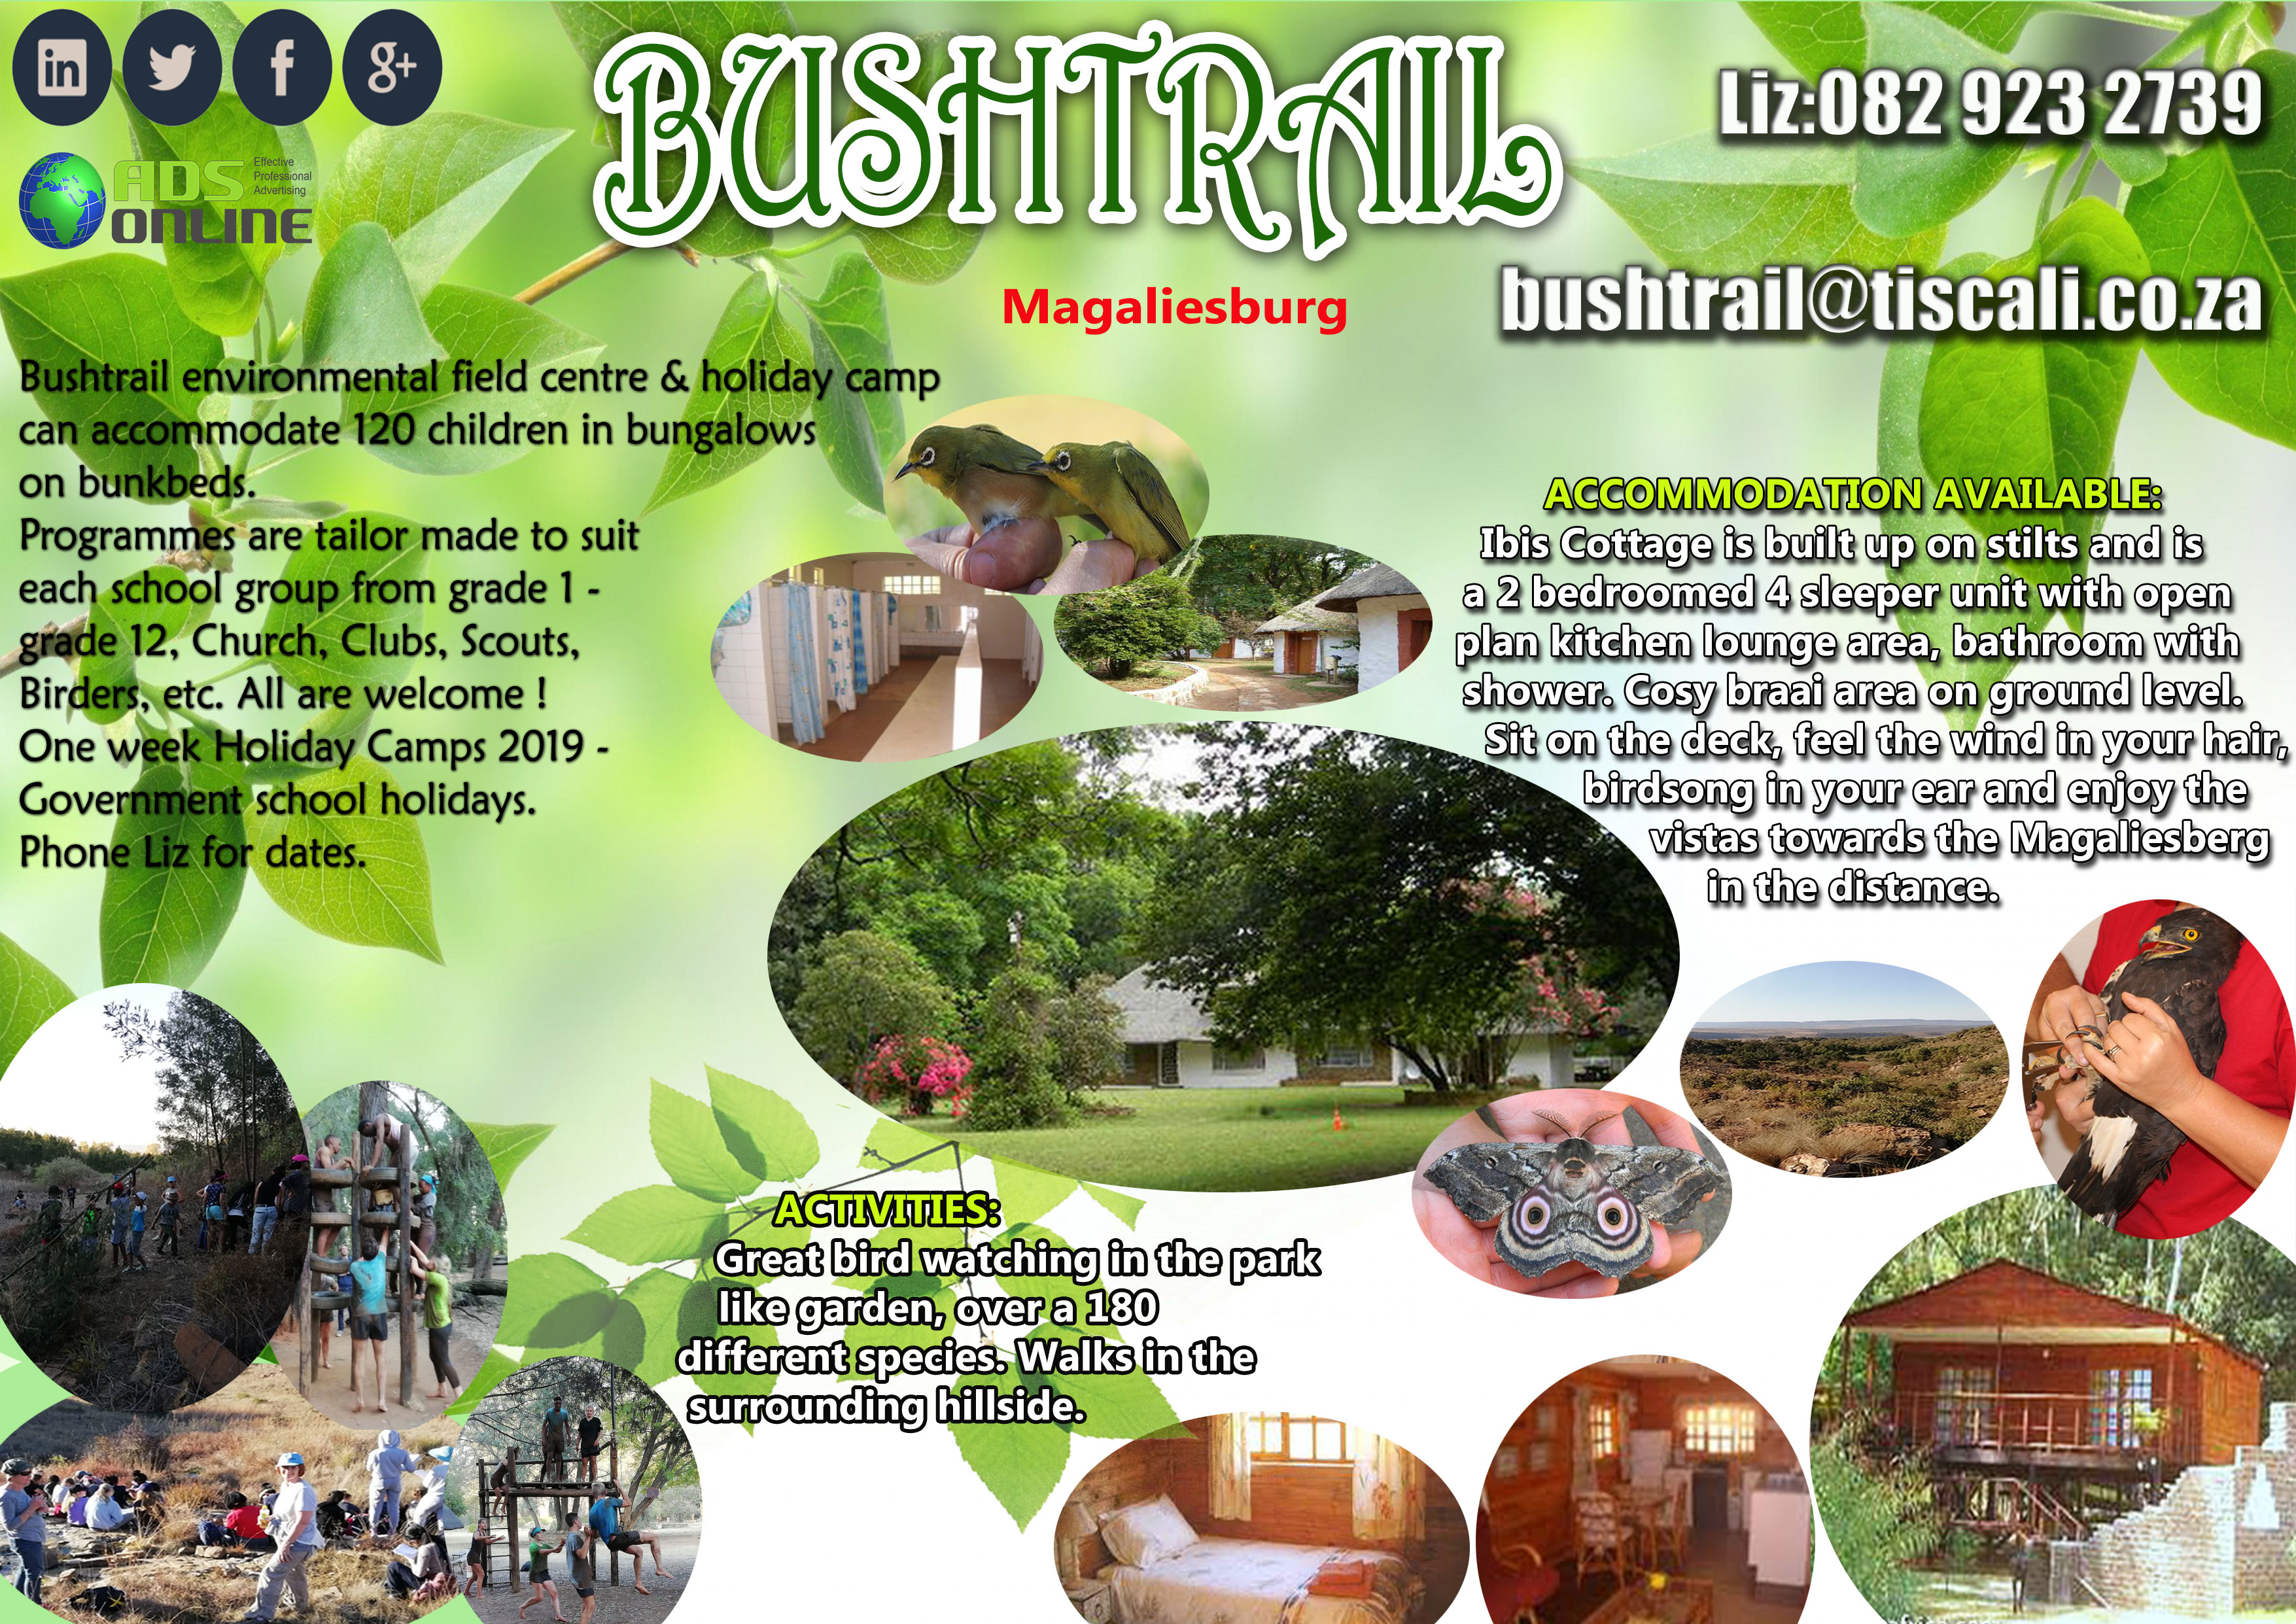 Bushtrails Ibis Cottage / Environmental Field Centre and Holiday Camp | Magaliesburg